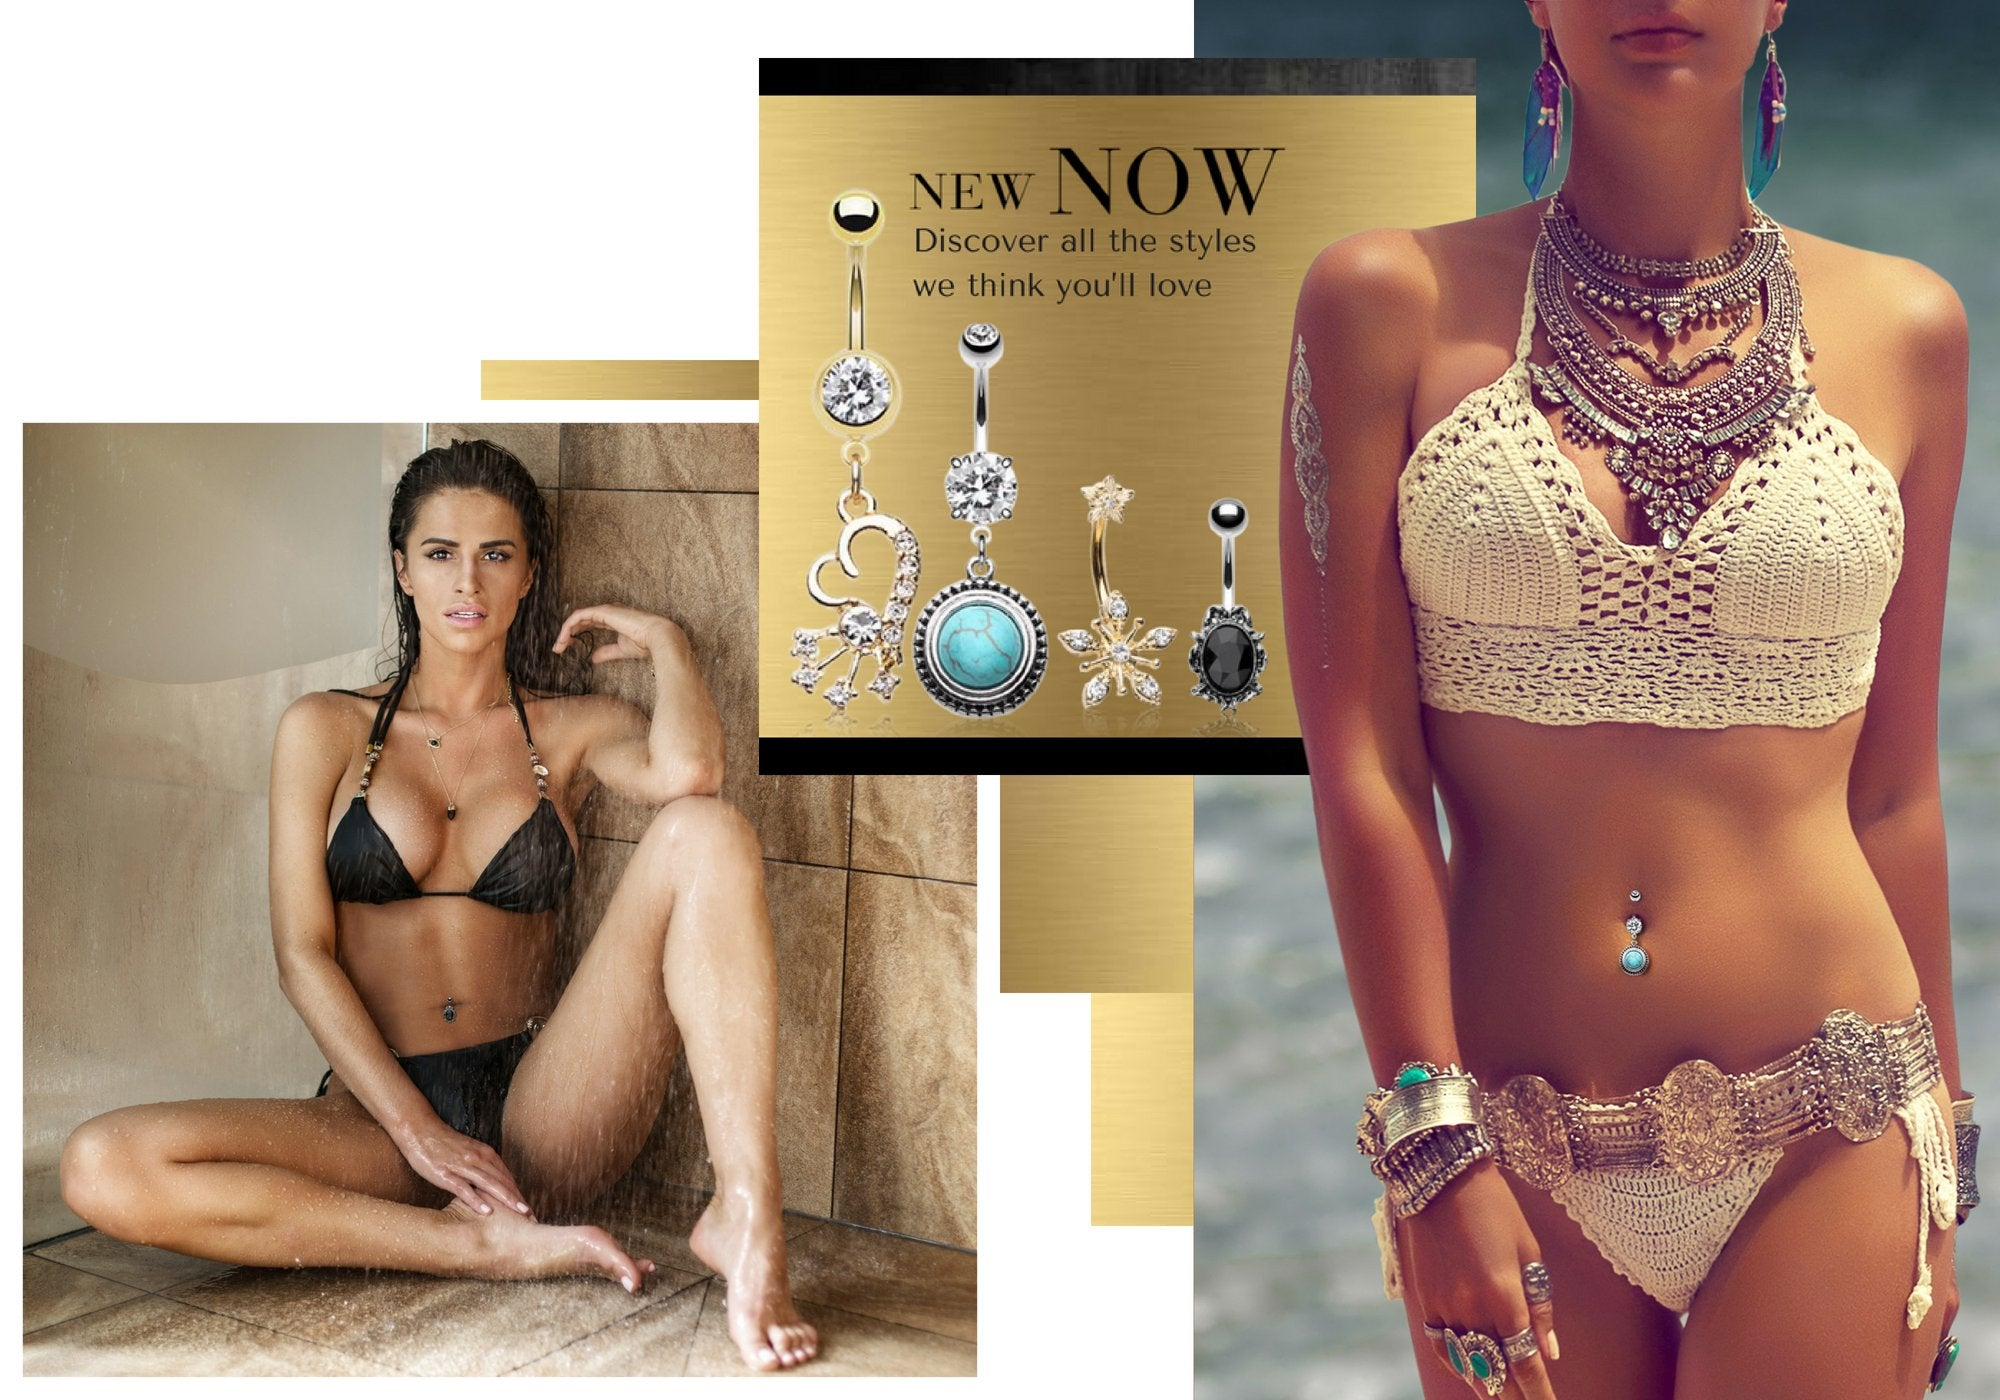 Belly Button Rings. Belly Bars. Get 20% off use code: Tummy. Australia